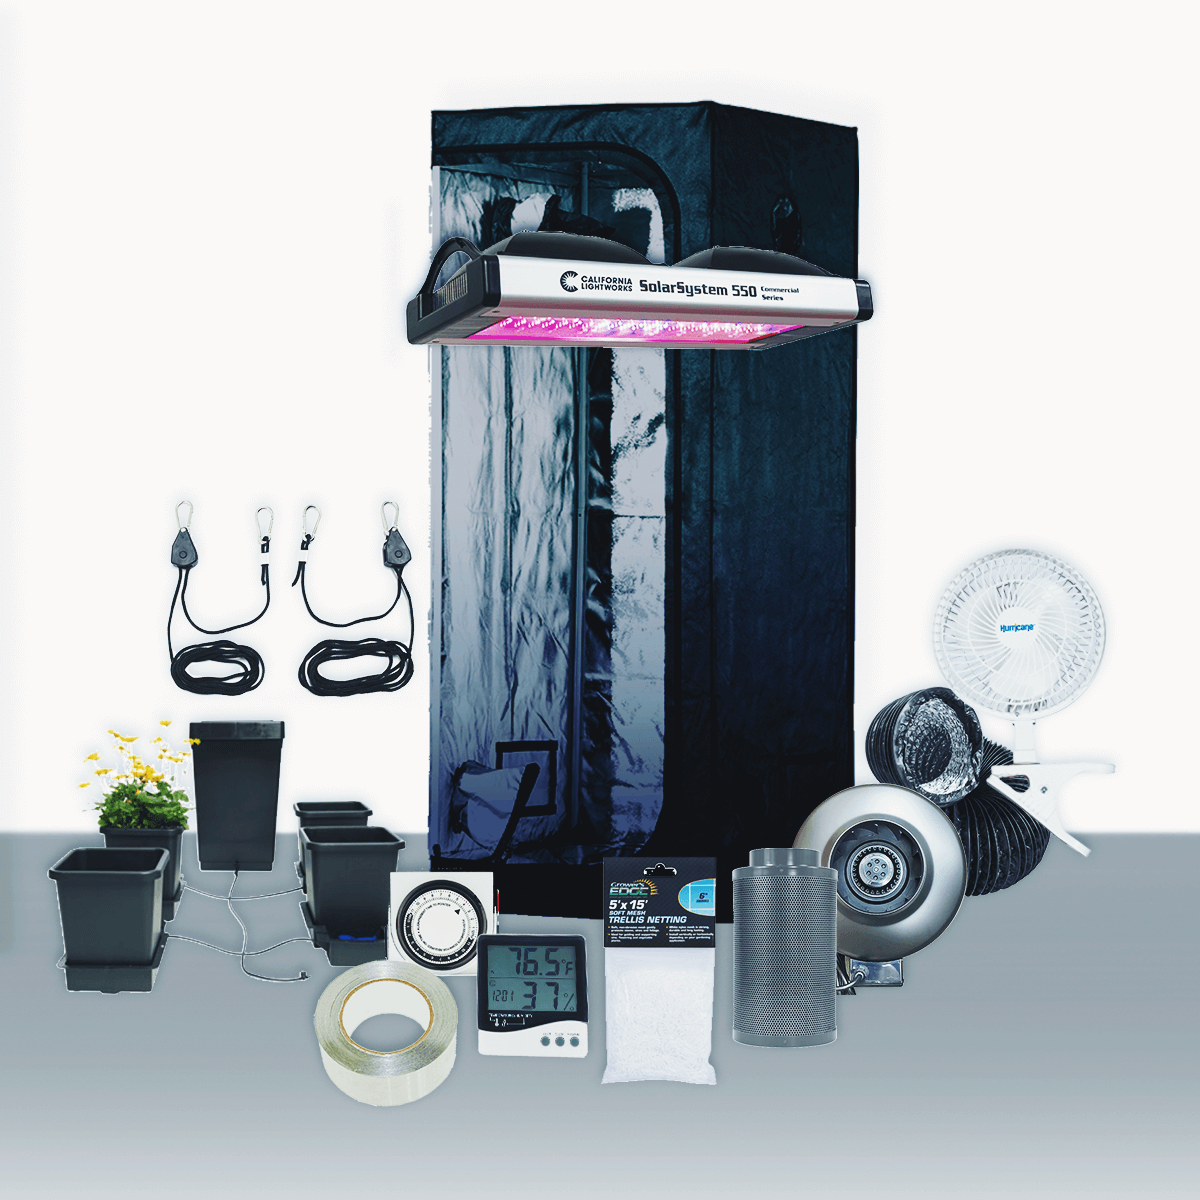 2.5' x 5' Grow Room 550W CLW LED Hydro Complete Grow Tent Package 2.5' x 5' Grow Room 550W CLW LED Hydro Complete Grow Tent Package This complete grow room tent package includes everything that you need to get started with discretely growing at home. Experienced growers designed every aspect of this tent package. They chose the parts of this package to create the best grow experience at an affordable price. Included in this Grow Tent Kit: Plant House Indoor Grow Tent - 2.5' x 5' x 73  Growers House Carbon Filter 6  x 16  400 CFM Active Air 6 inch In-Line Fan 400 CFM 6 inch x 25' Black Lightproof Ducting w/Clamps Silver Flex Duct Tape -- 5 Yards 2 x Hurricane 6 inch Clip Fan - Classic Series SolarSystem 550 Programmable Spectrum LED, 90-277V Grow Crew 1/8 inch Ratchet Light Hanger (Pair) Titan Controls Apollo 8 -- 24 Hour Dual Timer Grower's Edge Large Display Thermometer & Hygrometer Root Spa 5 Gal - Four Bucket System Grower's Edge Soft Mesh Trellis Netting 5 ft x 15 ft w/ 6 in Squares General Hydroponics pH Control Kit Plant House Indoor Grow Tent - 2.5' x 5' x 73  The Plant House Indoor Grow Tent gives you total control over your grow space. The Plant House tent is built with a reinforced full metal frame and thick, durable sheathing fabric. It features crossbars to give growers the option of hanging lighting and ventilation systems from the ceiling (maximum load capacity of 110 lbs), opening up the entire 12.5 square ft of grow space for their crop. The The Plant House Indoor Grow Tent is great for more experienced growers to use with hydroponics systems or to grow taller plants. All lighting types including HPS, MH, CMH, fluorescent, LED, and more work in this grow tent. Accessing your crop and managing airflow is easy with the Plant House Indoor Grow Tent. The Plant House grow tent has a number of inlets at the bottom and top, each with double cinch flanges allowing you to adjust the inlet diameter, and if needed. Seal them with a Velcro flap for a 100% lightp